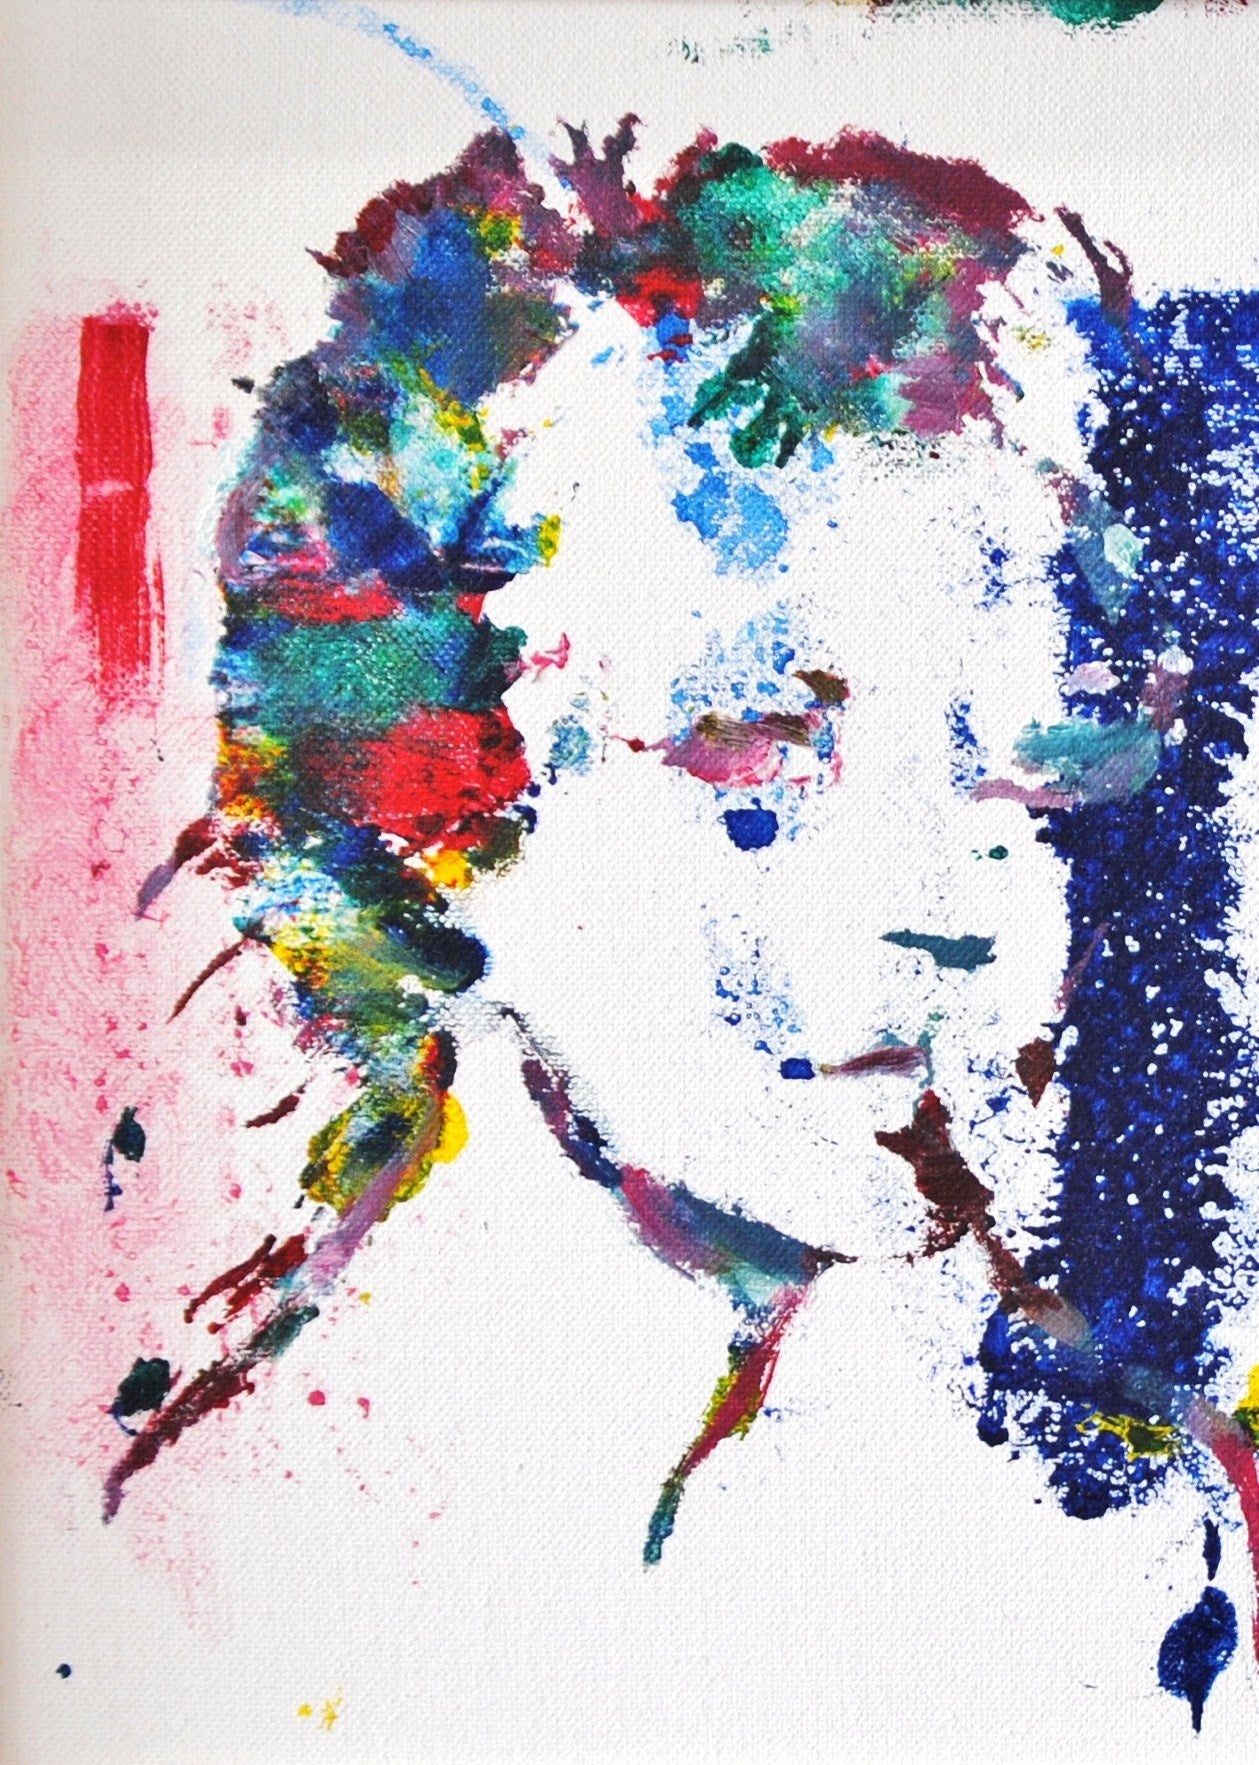 2XKM (Two Times Kate Moss) - Pop Art Painting by Jack Graves III